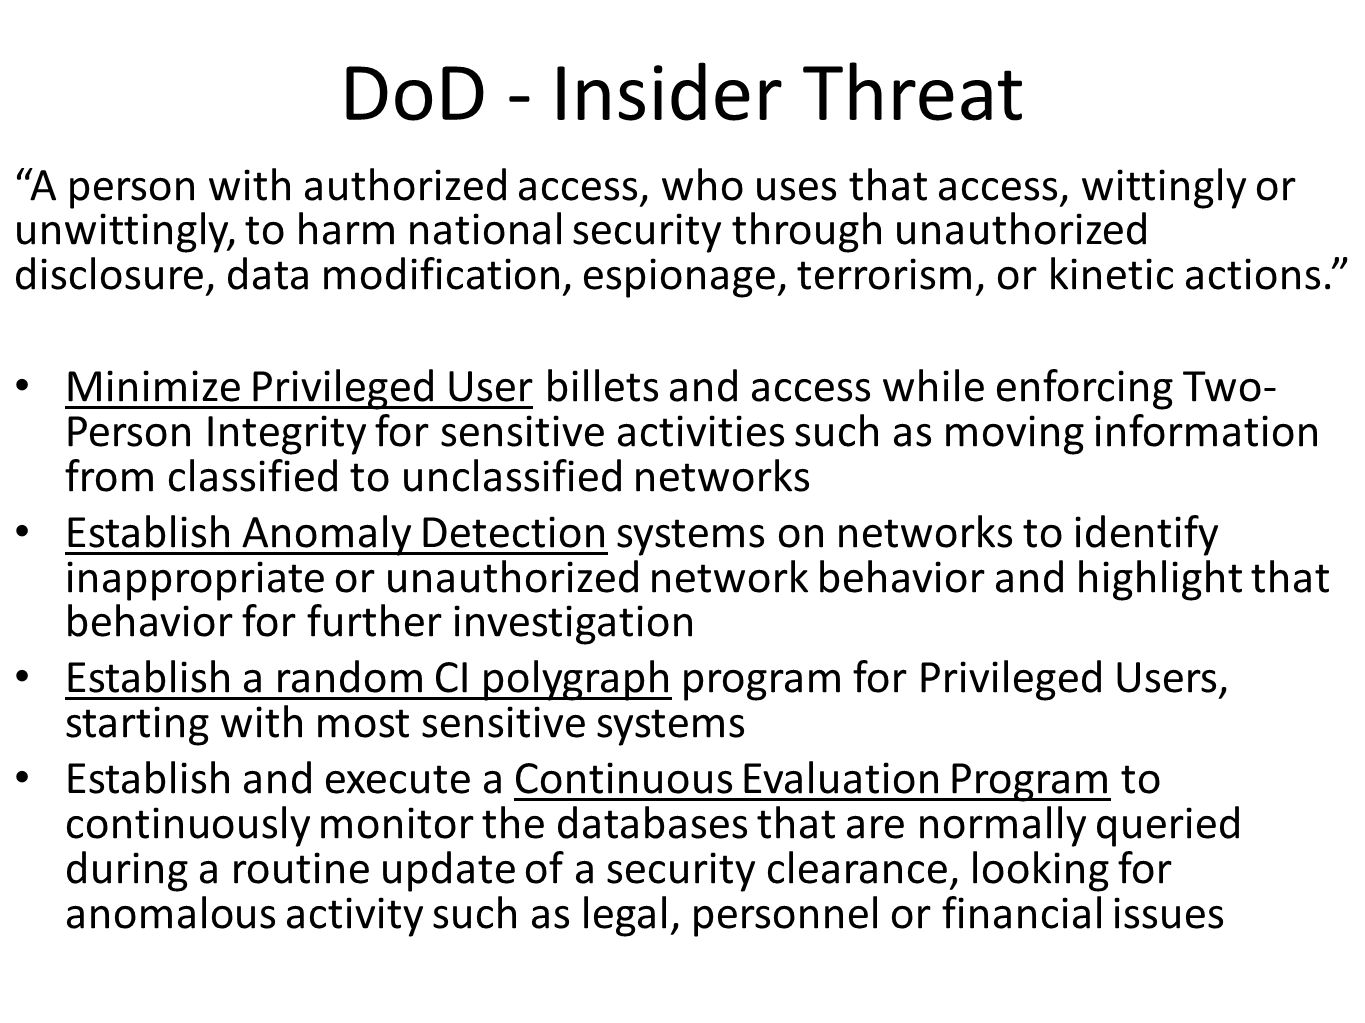 DoD - Insider Threat A person with authorized access, who uses that access, wittingly or unwittingly, to harm national security through unauthorized disclosure, data modification, espionage, terrorism, or kinetic actions. Minimize Privileged User billets and access while enforcing Two- Person Integrity for sensitive activities such as moving information from classified to unclassified networks Establish Anomaly Detection systems on networks to identify inappropriate or unauthorized network behavior and highlight that behavior for further investigation Establish a random CI polygraph program for Privileged Users, starting with most sensitive systems Establish and execute a Continuous Evaluation Program to continuously monitor the databases that are normally queried during a routine update of a security clearance, looking for anomalous activity such as legal, personnel or financial issues